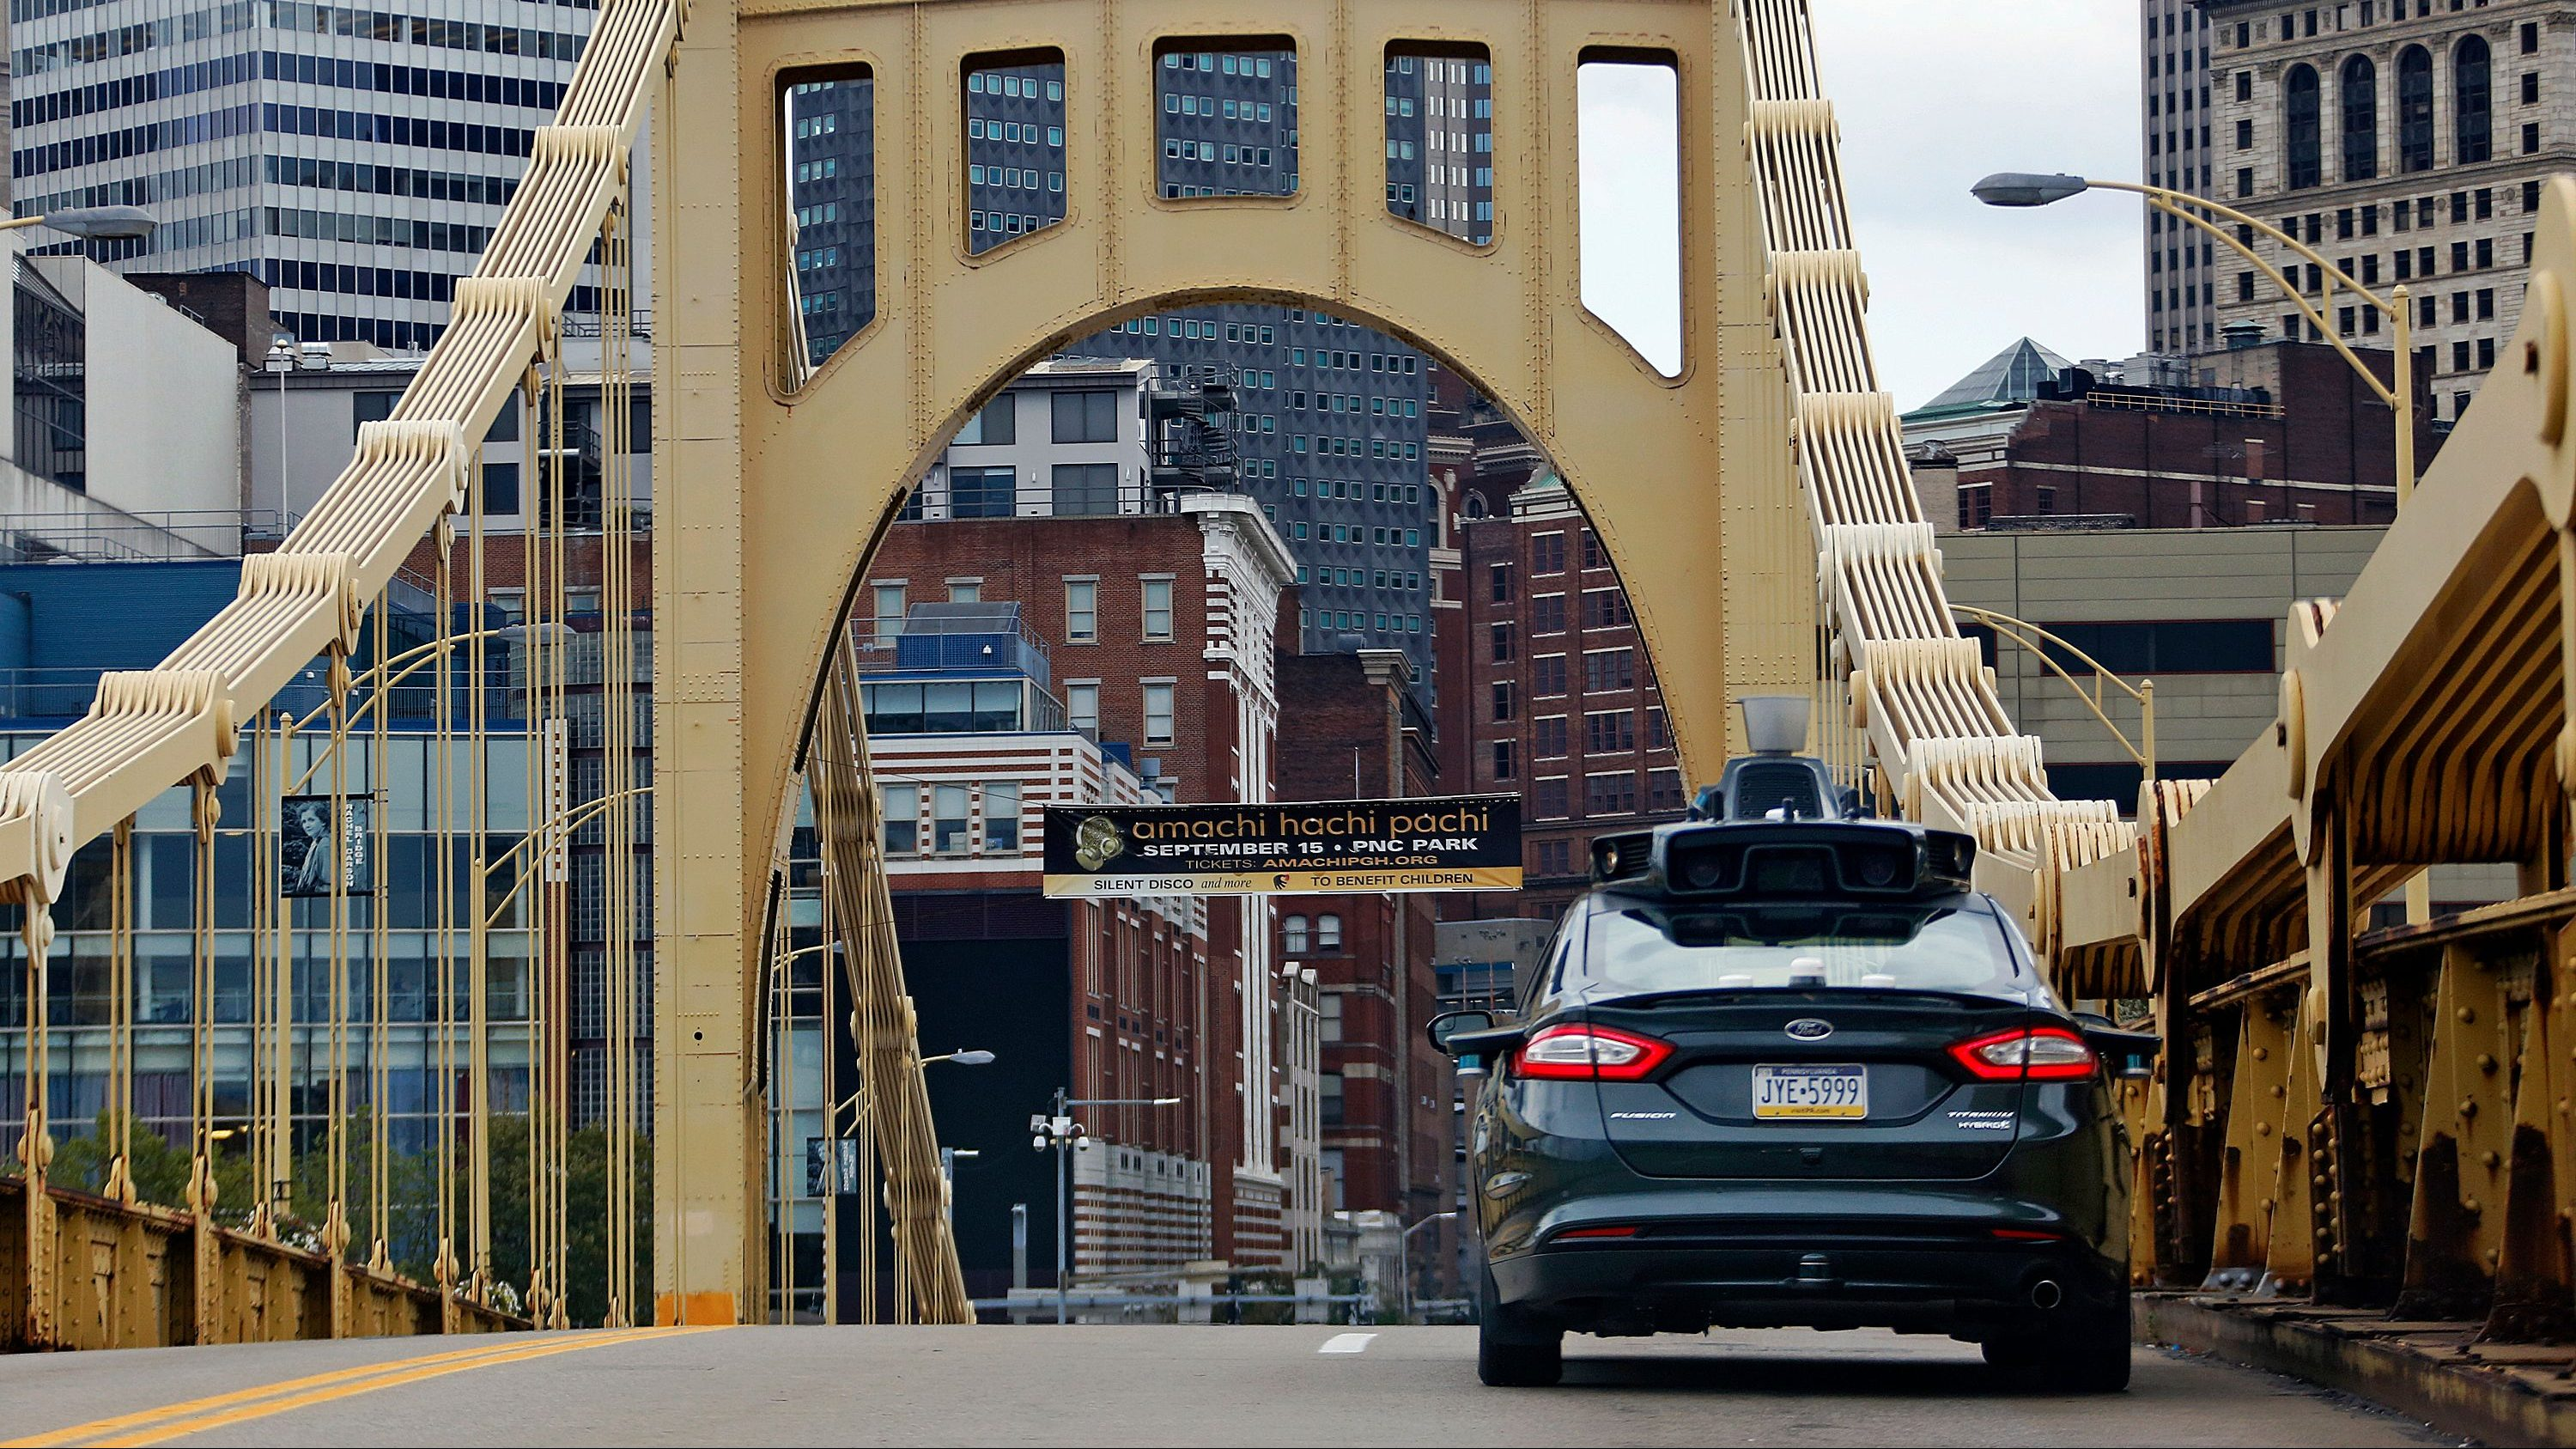 A self driving Uber car drives across the ninth street bridge in downtown Pittsburgh Wednesday, Sept. 14, 2016. On Wednesday, a fleet of self-driving Ford Fusions began picking up Uber riders who opted to participate in a test program. While the vehicles are loaded with features that allow them to navigate on their own, an Uber engineer sits in the driver's seat and can seize control if things go awry.  (AP Photo/Gene J. Puskar)